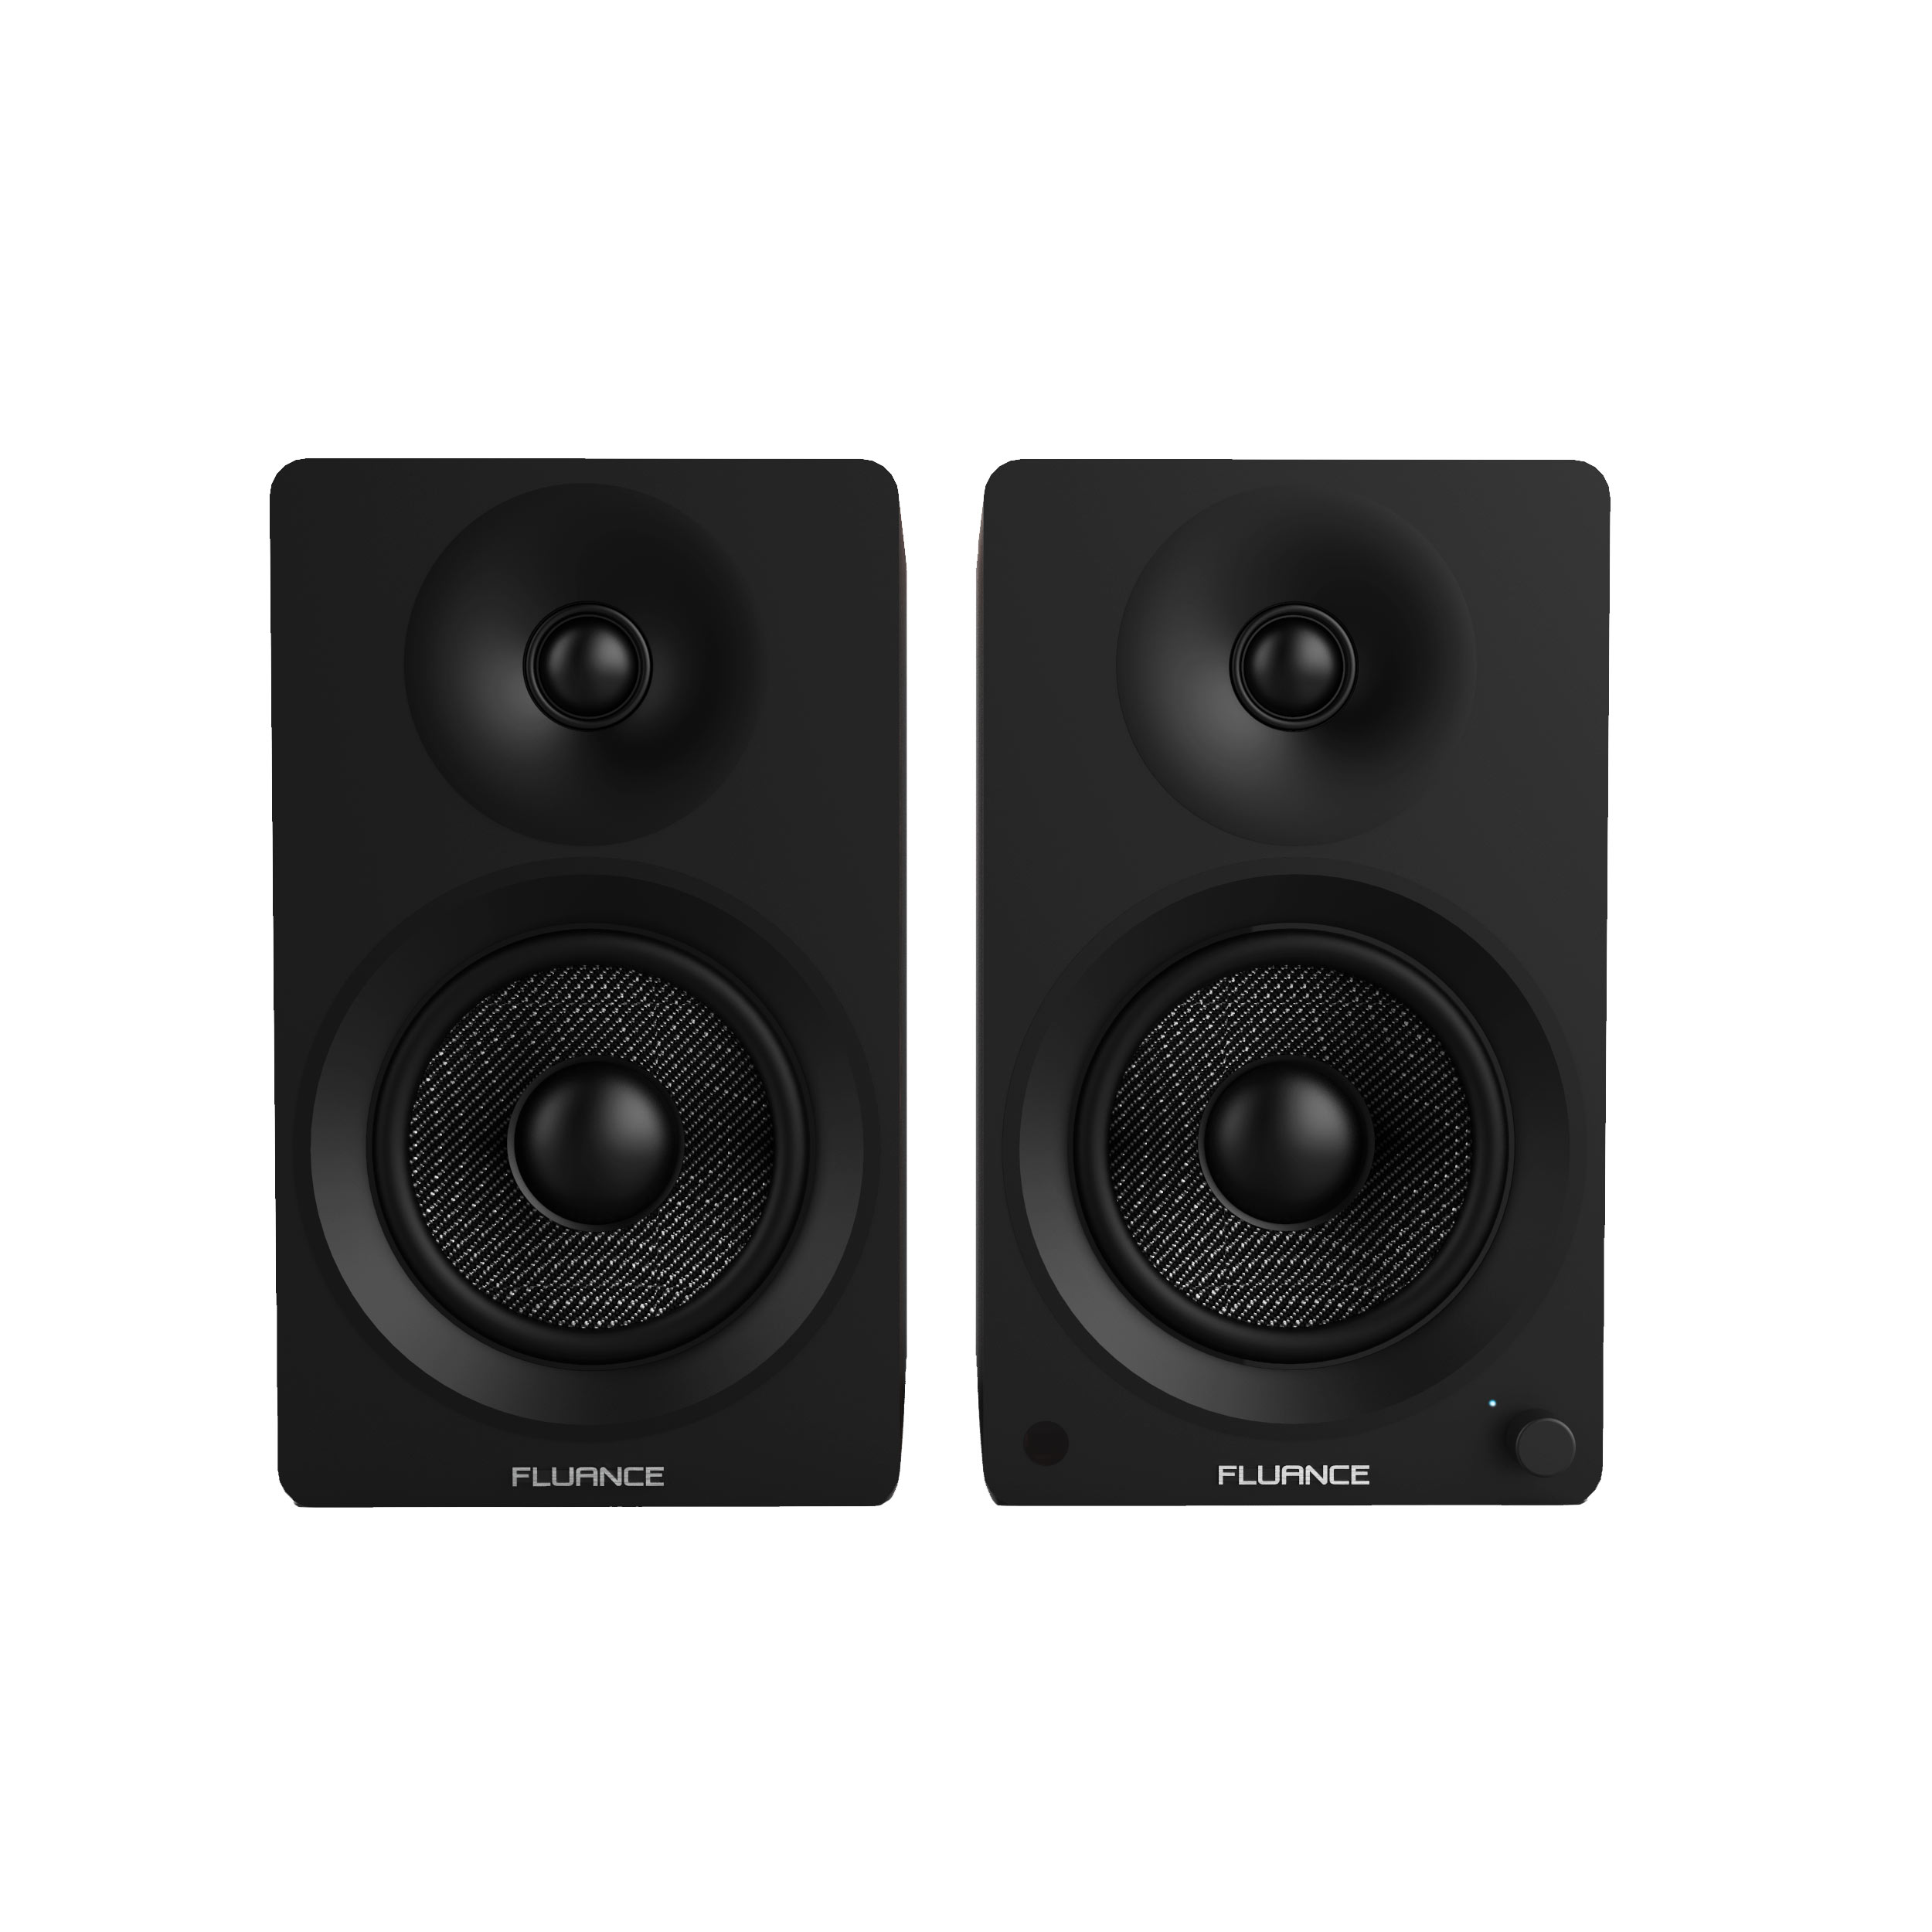 Fluance Powered 5 Bookshelf Speakers For Turntable PC HDTV